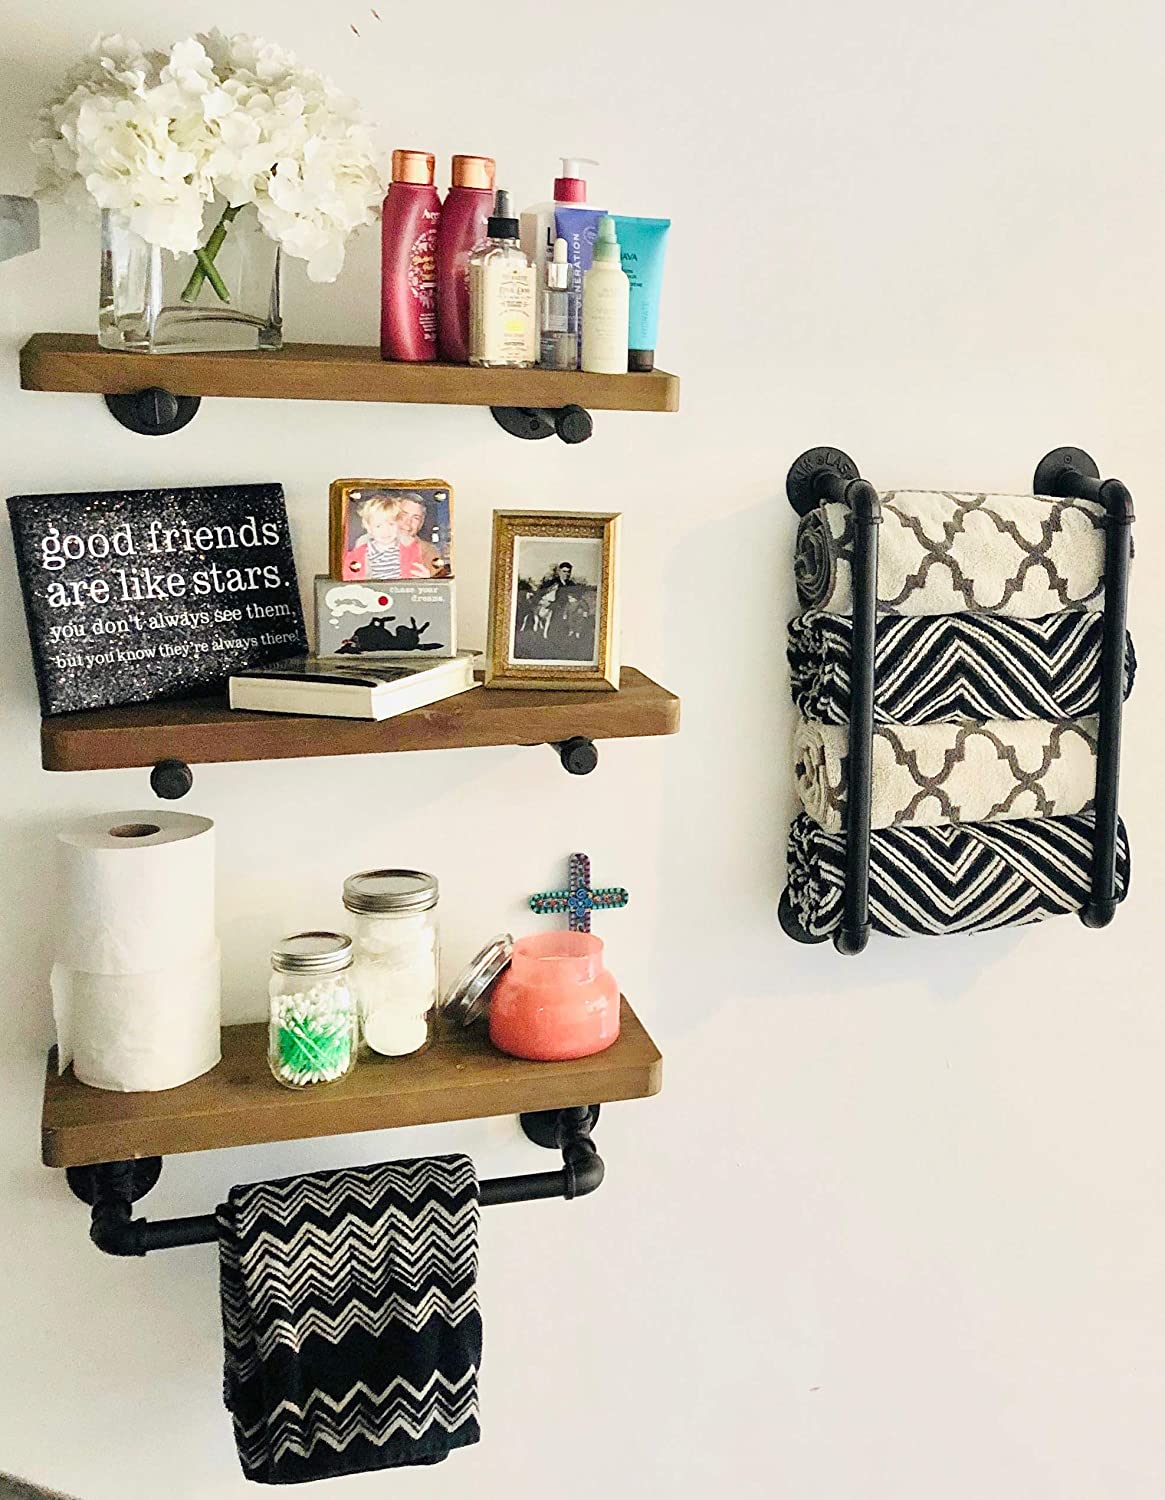 Industrial Pipe Shelves with Both Towel Racks: DIY Floating Wood Shelves on Industrial Pipes - Rustic Mounted Wall Shelf for Bathroom, Kitchen, Living Room, Bedroom - Farmhouse Decor Shelving Units